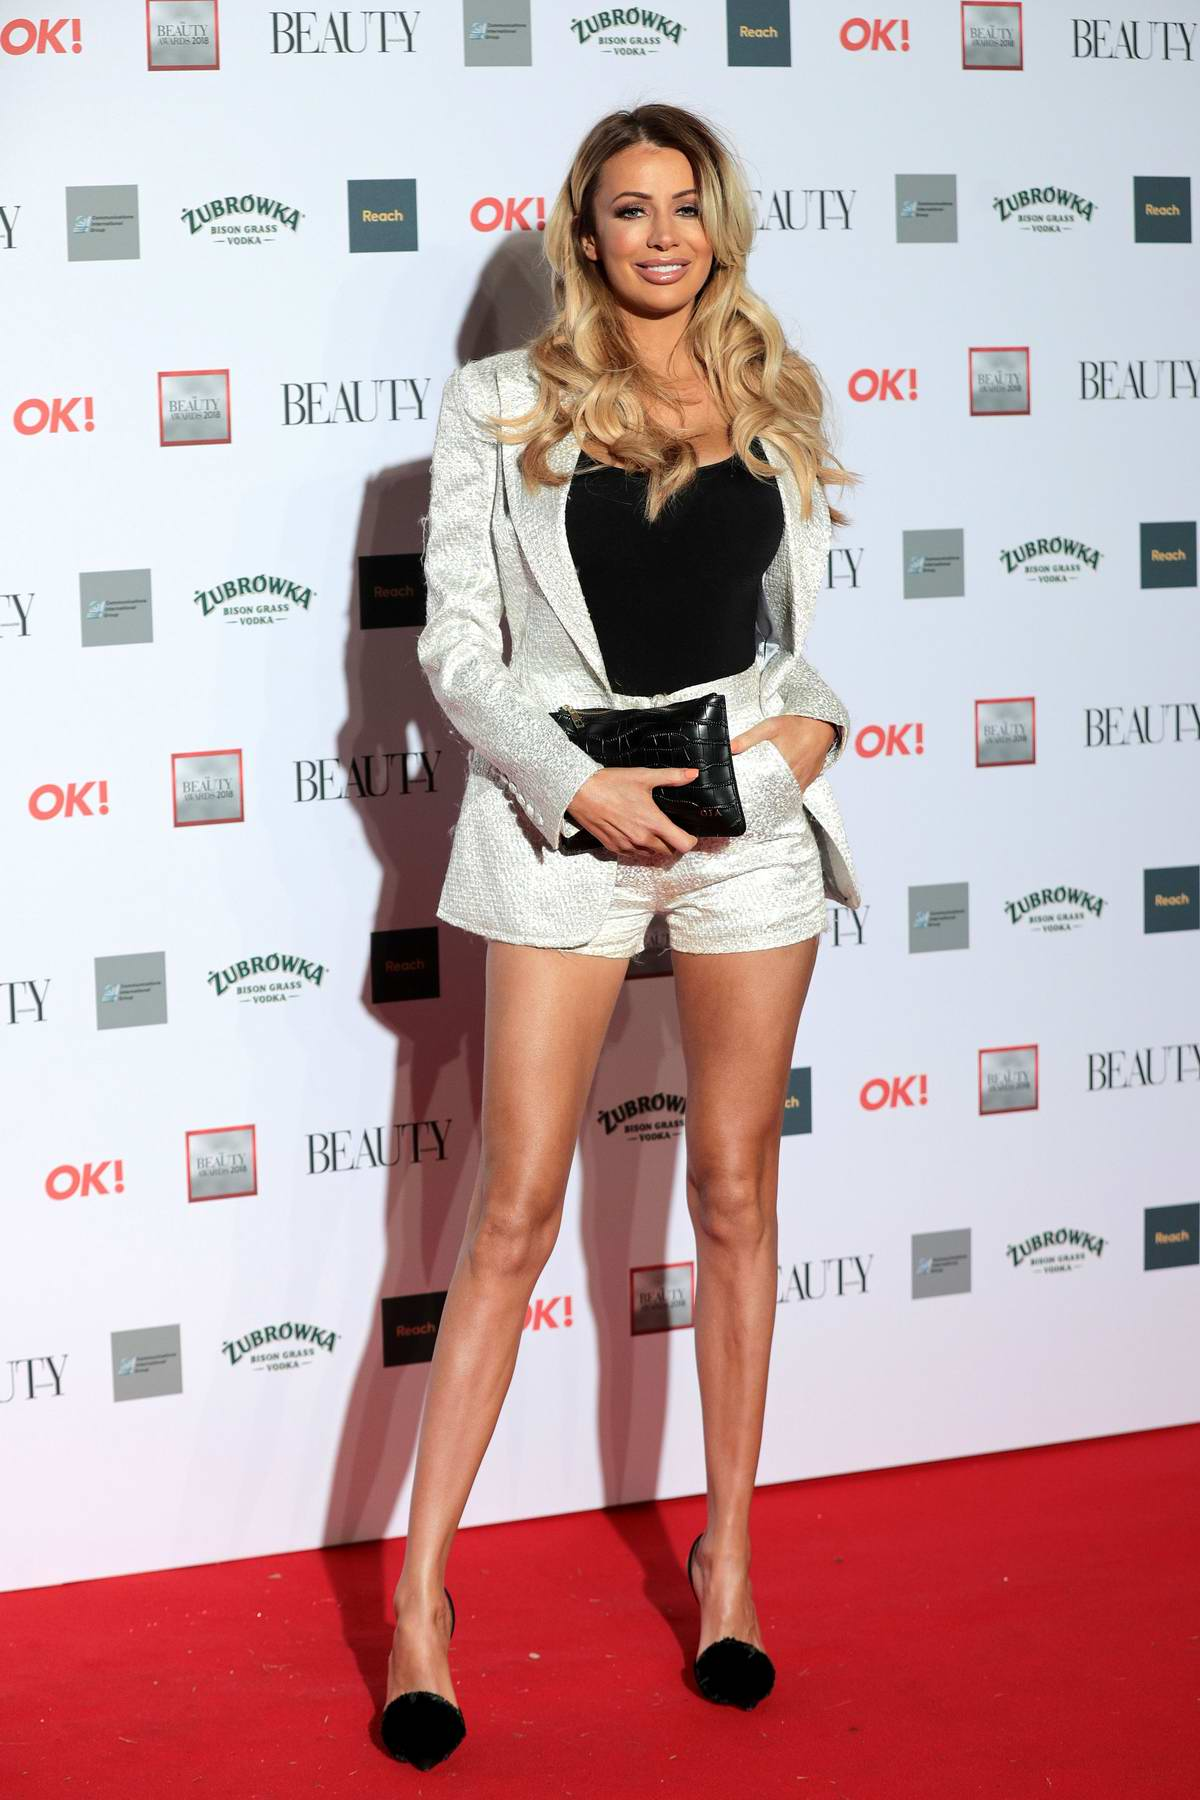 Olivia Attwood attends the OK! Beauty Awards at Park Plaza Westminster Bridge in London, UK